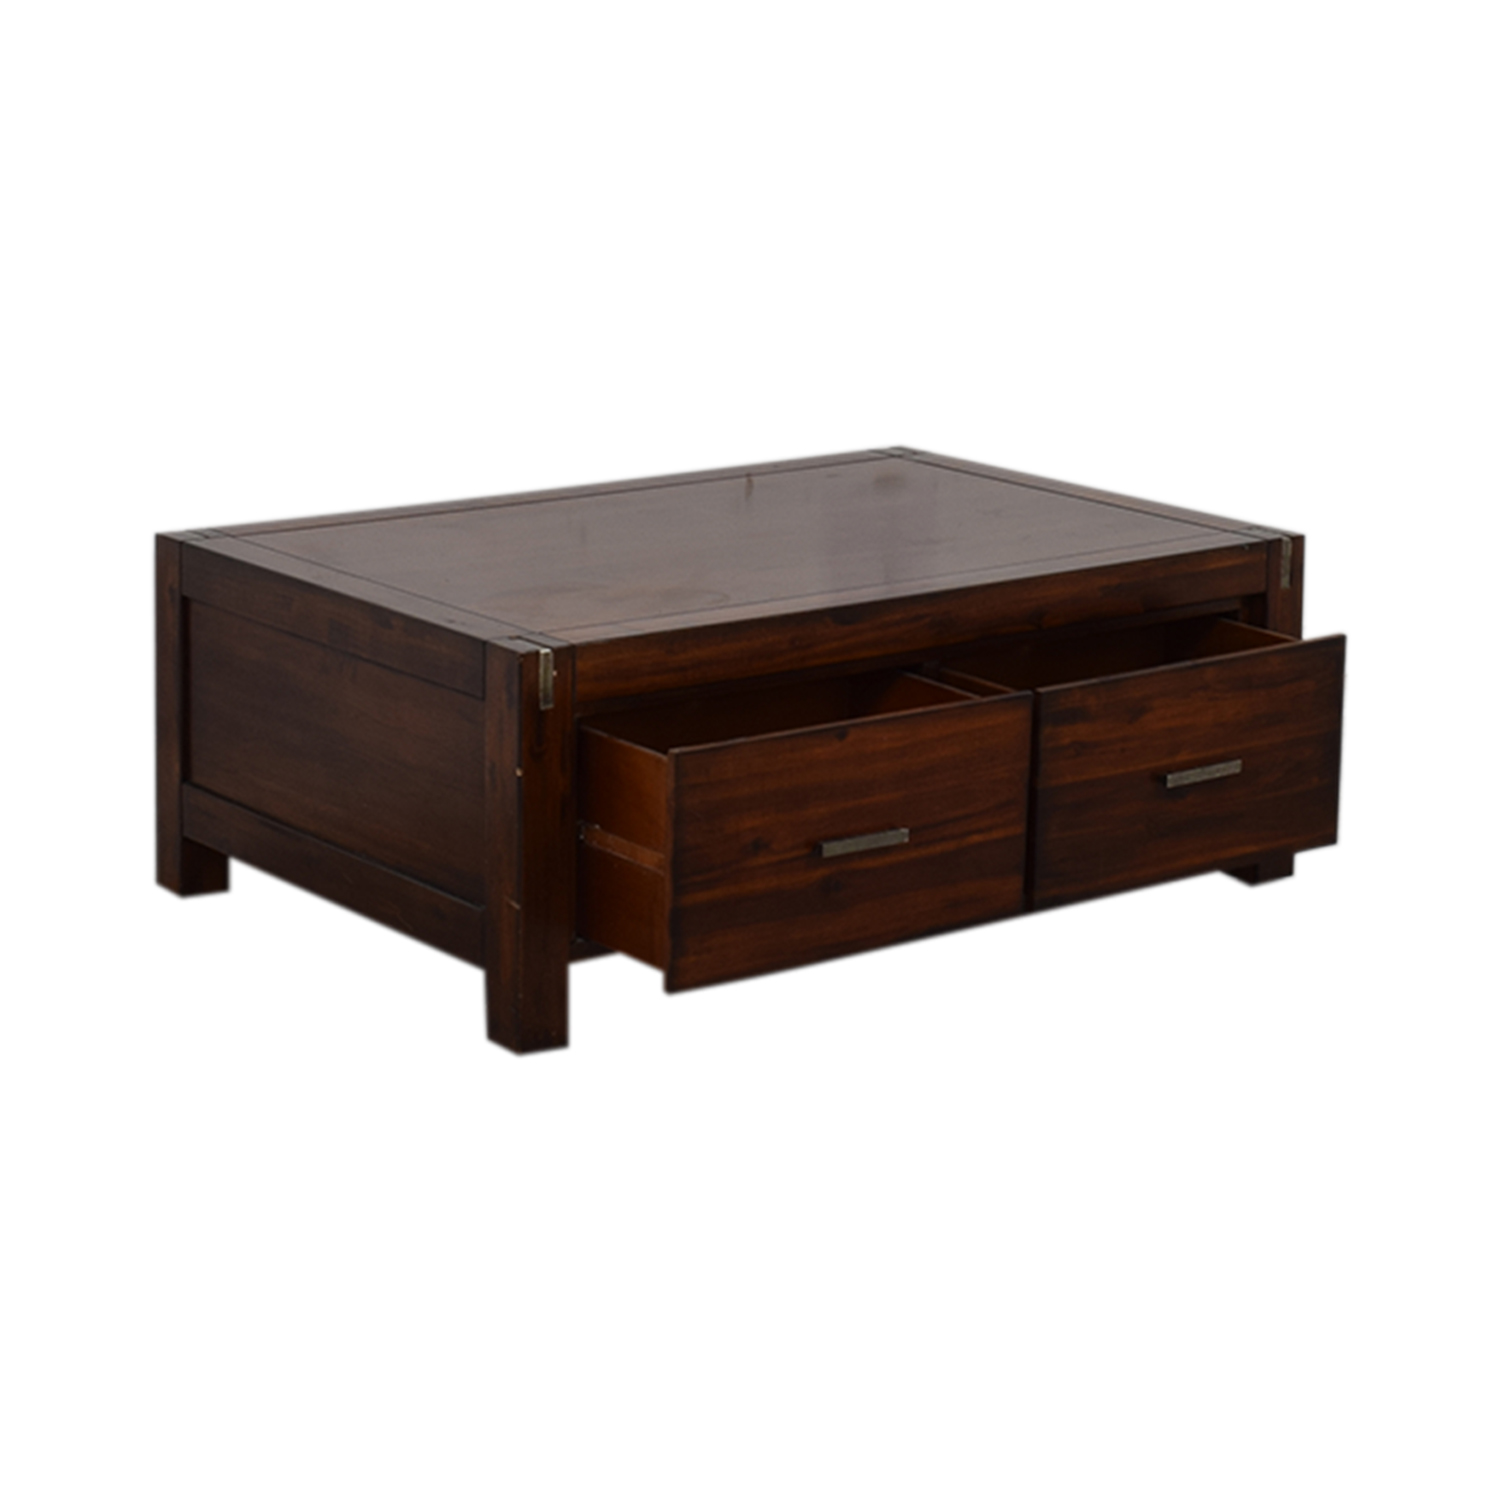 Ethan Allan Wood Coffee Table with Storage / Tables